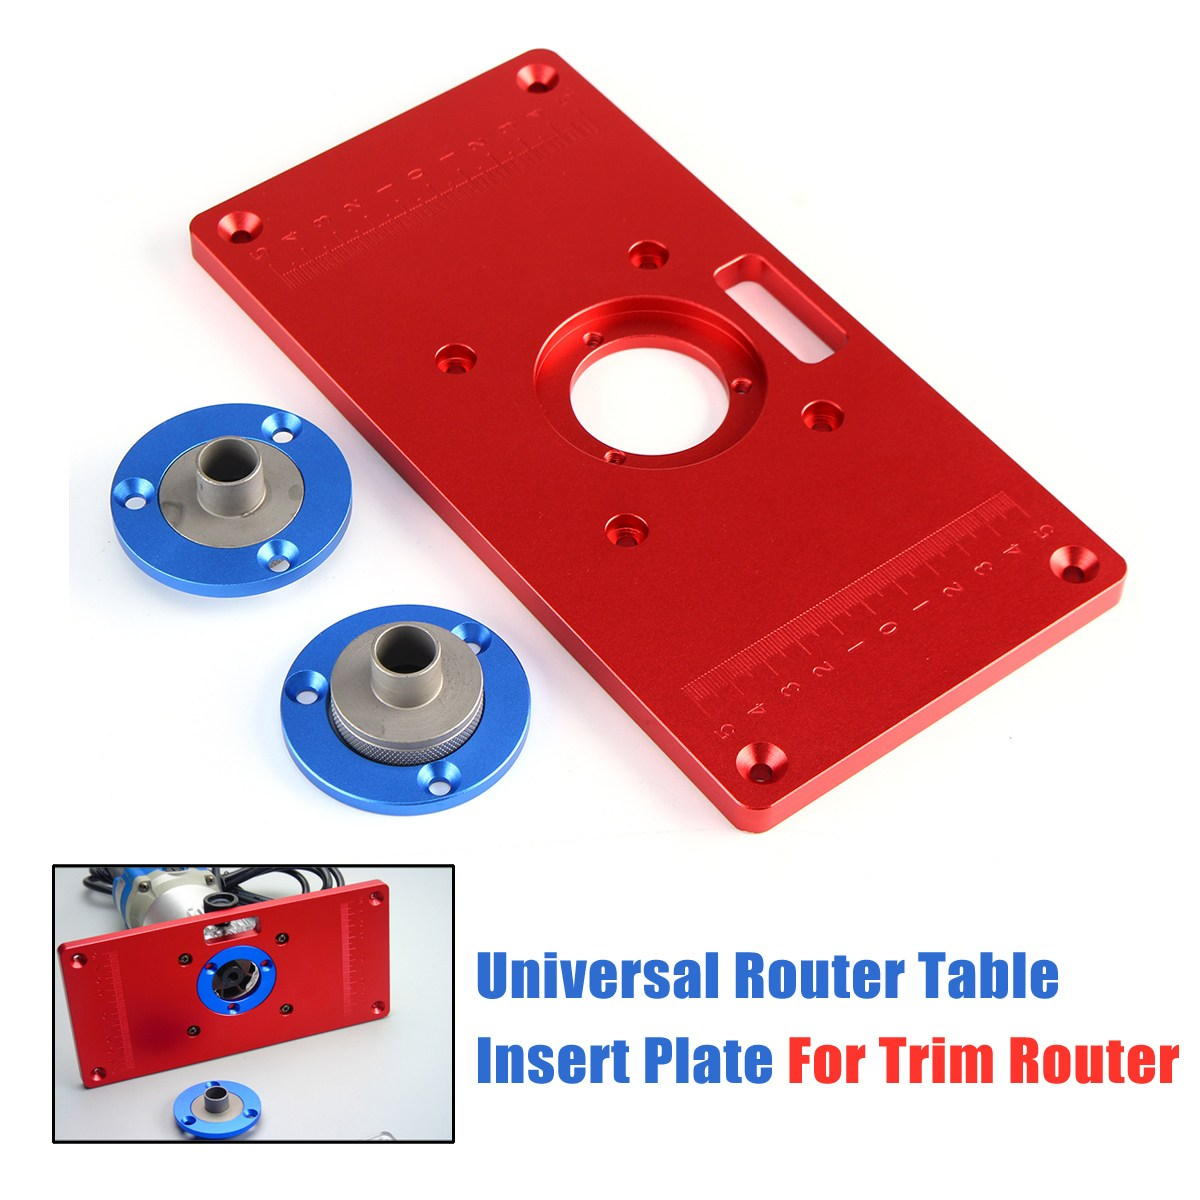 235x120x10mm Universal Router Table Insert Plate For DIY Woodworking Wood Router Trimmer Models Engraving Machine<br>